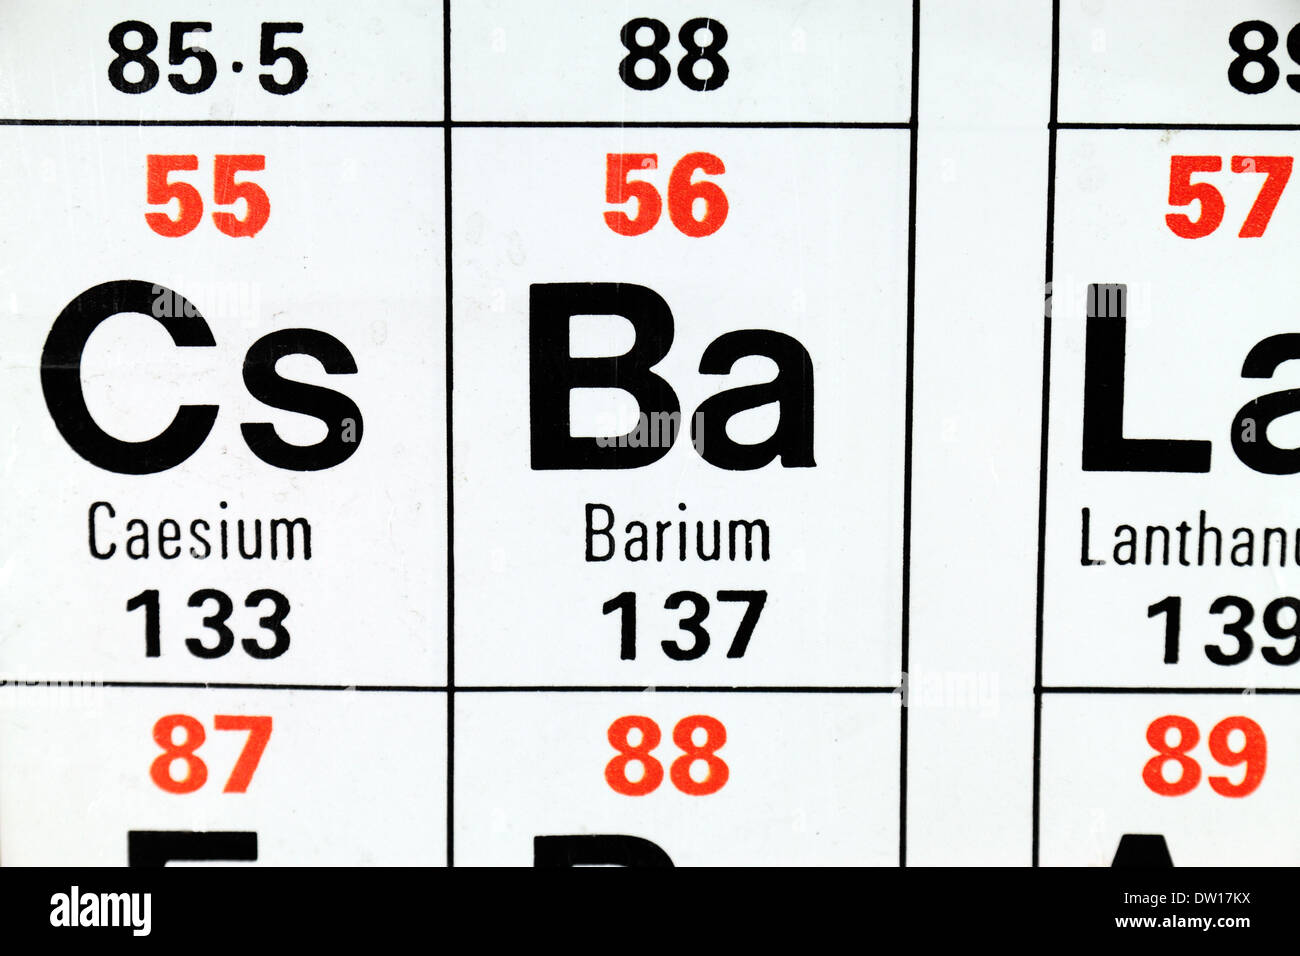 Barium ba as it appears on the periodic table stock photo barium ba as it appears on the periodic table gamestrikefo Gallery